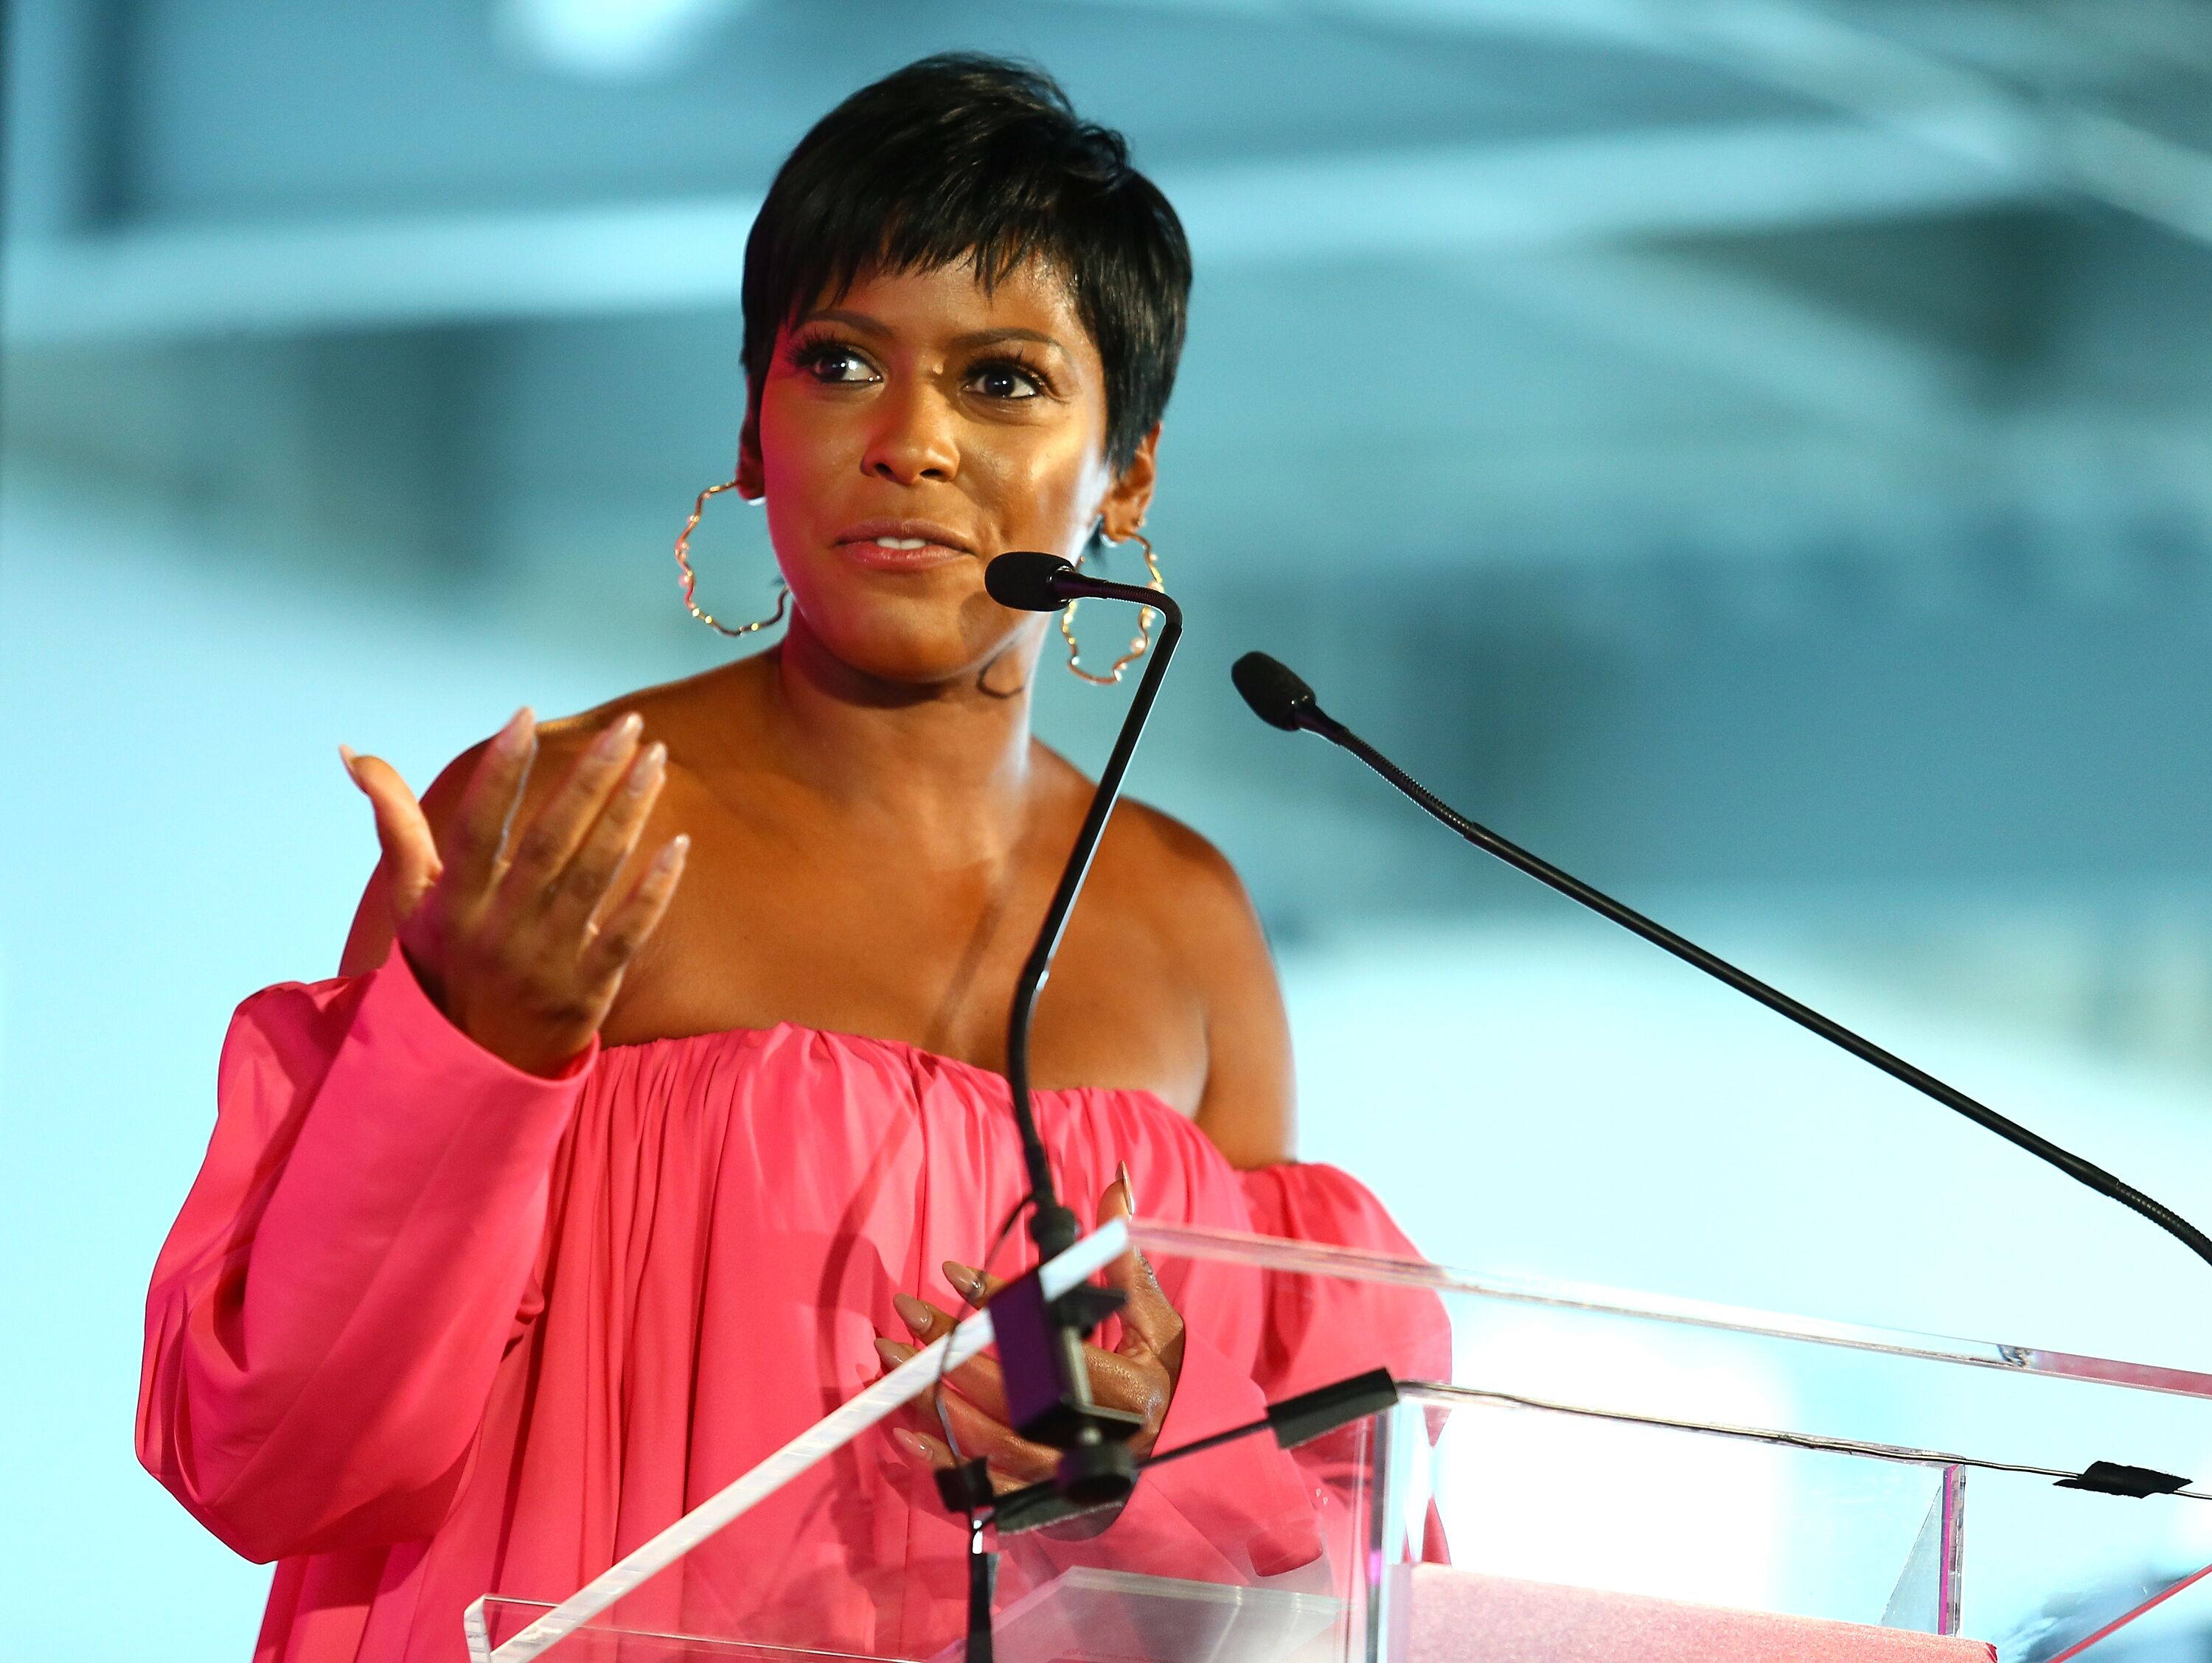 Tamron Hall speaking at a conference | Source: Getty Images/GlobalImagesUkraine